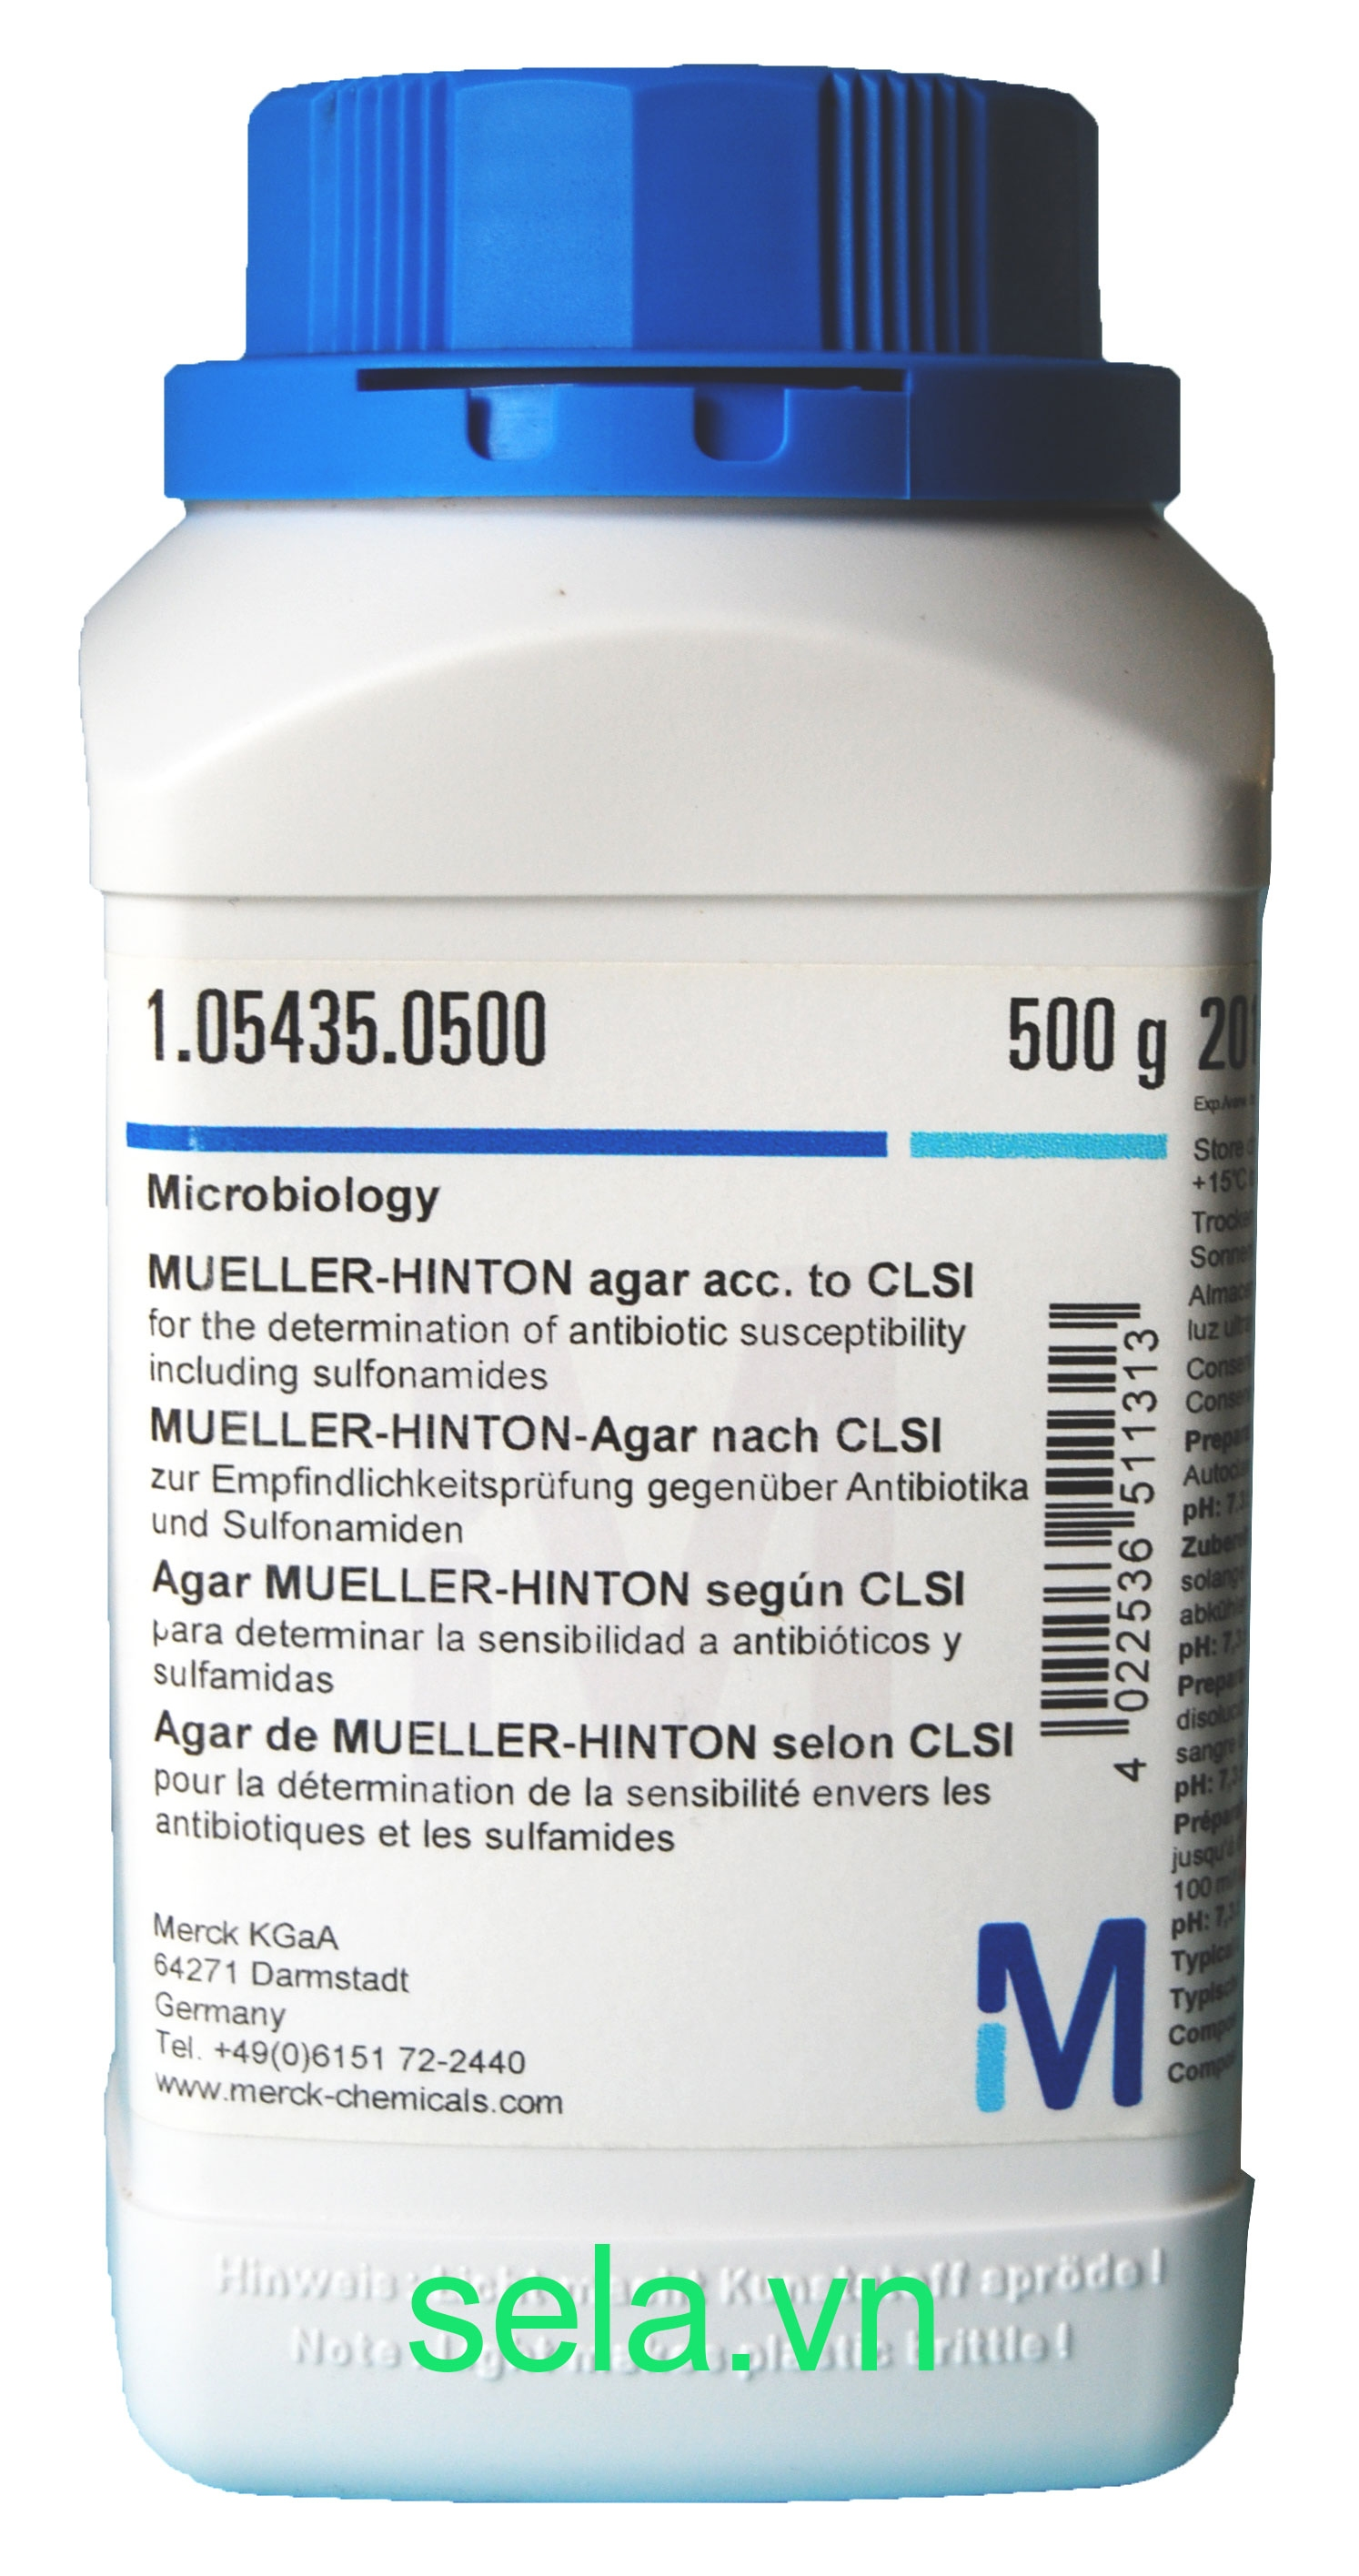 MUELLER-HINTON agar acc. to CLSI for the determination of antibiotic susceptibility including sulfonamides